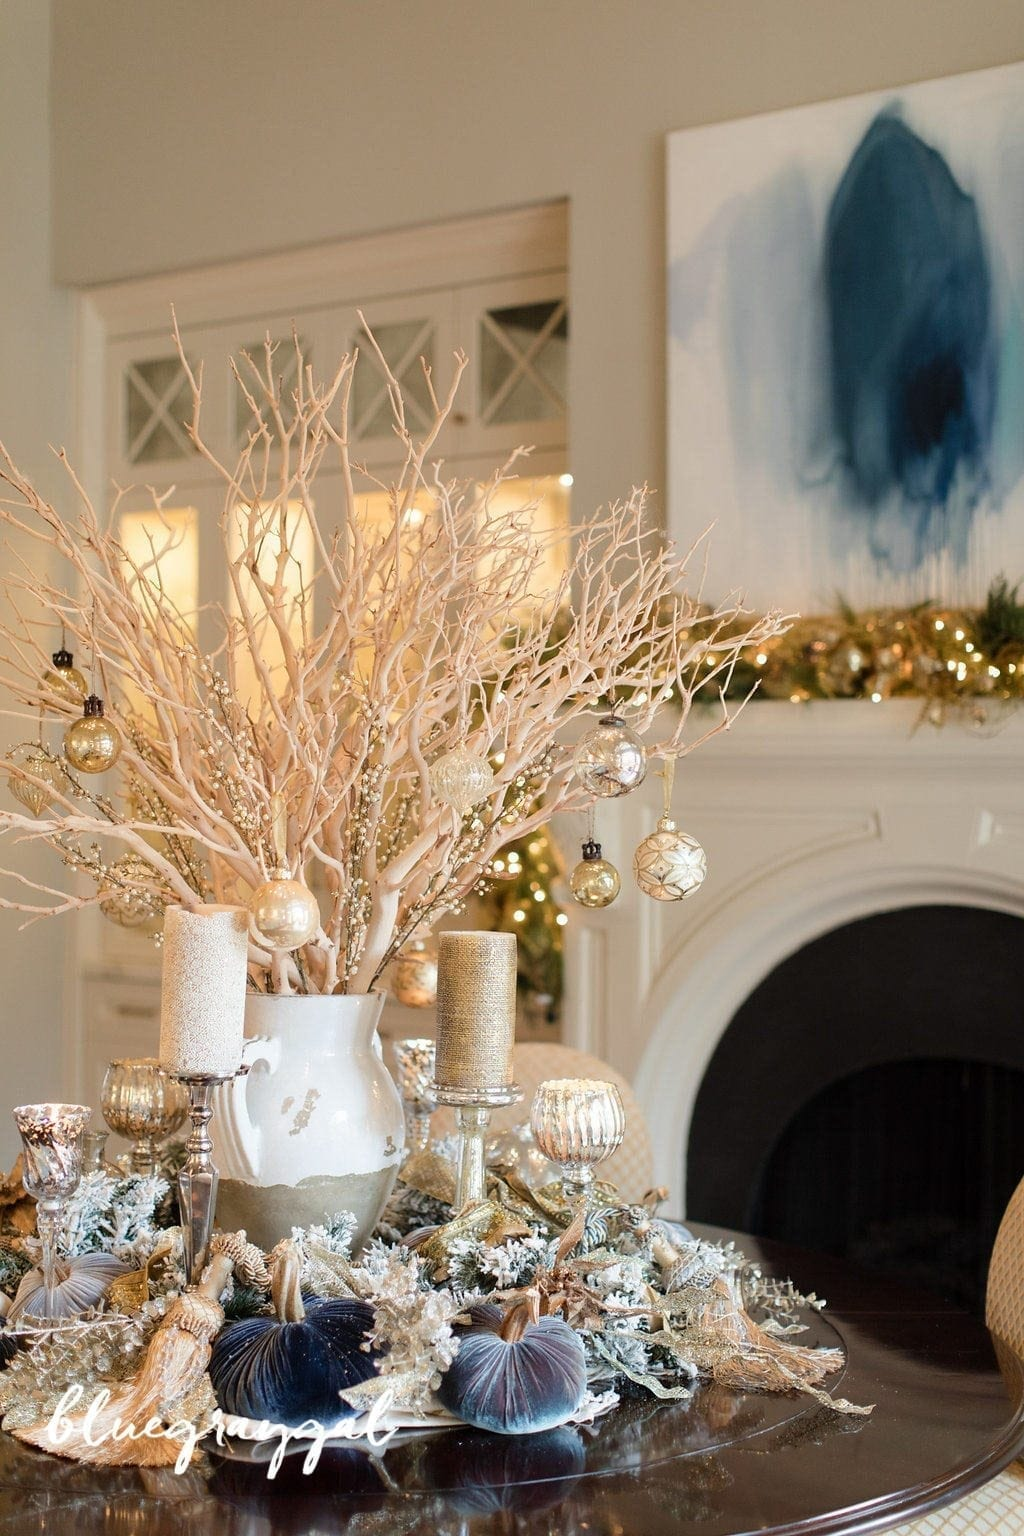 Holiday Centerpiece Decor with manzanita branches and a tuscan urn on a round dining room table